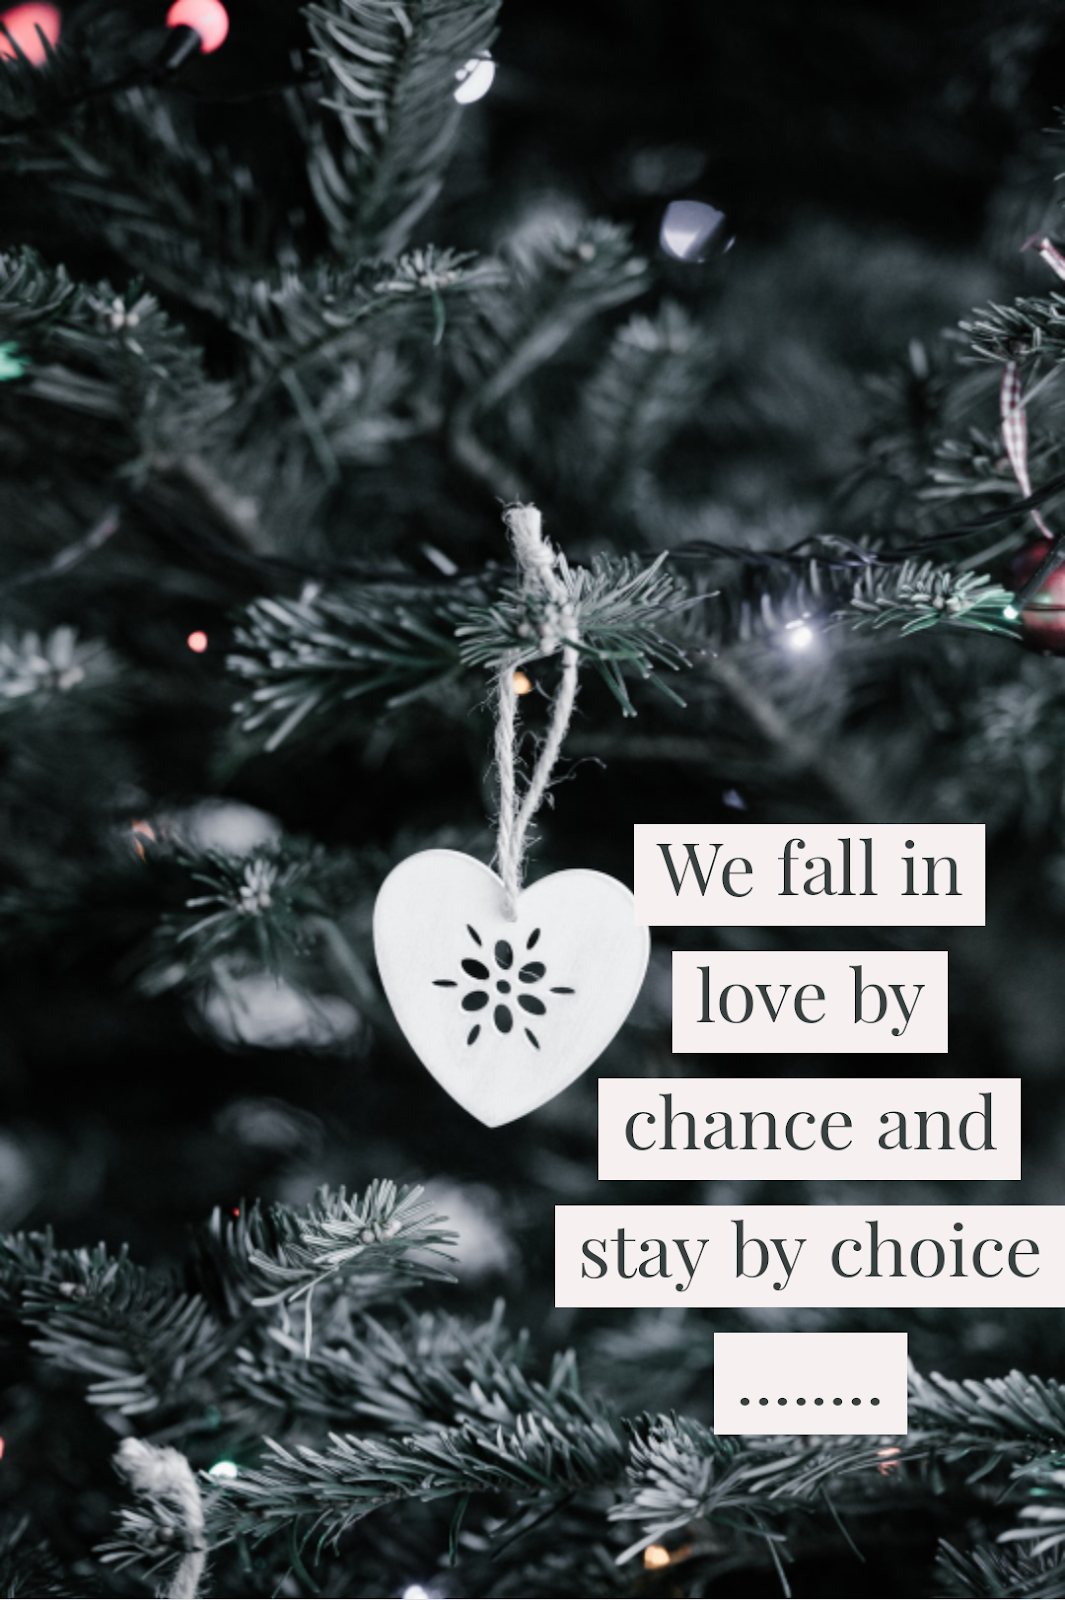 Pin By Adore Quotes On For Couples Quotes In 2020 Fall We Fall In Love Couple Quotes